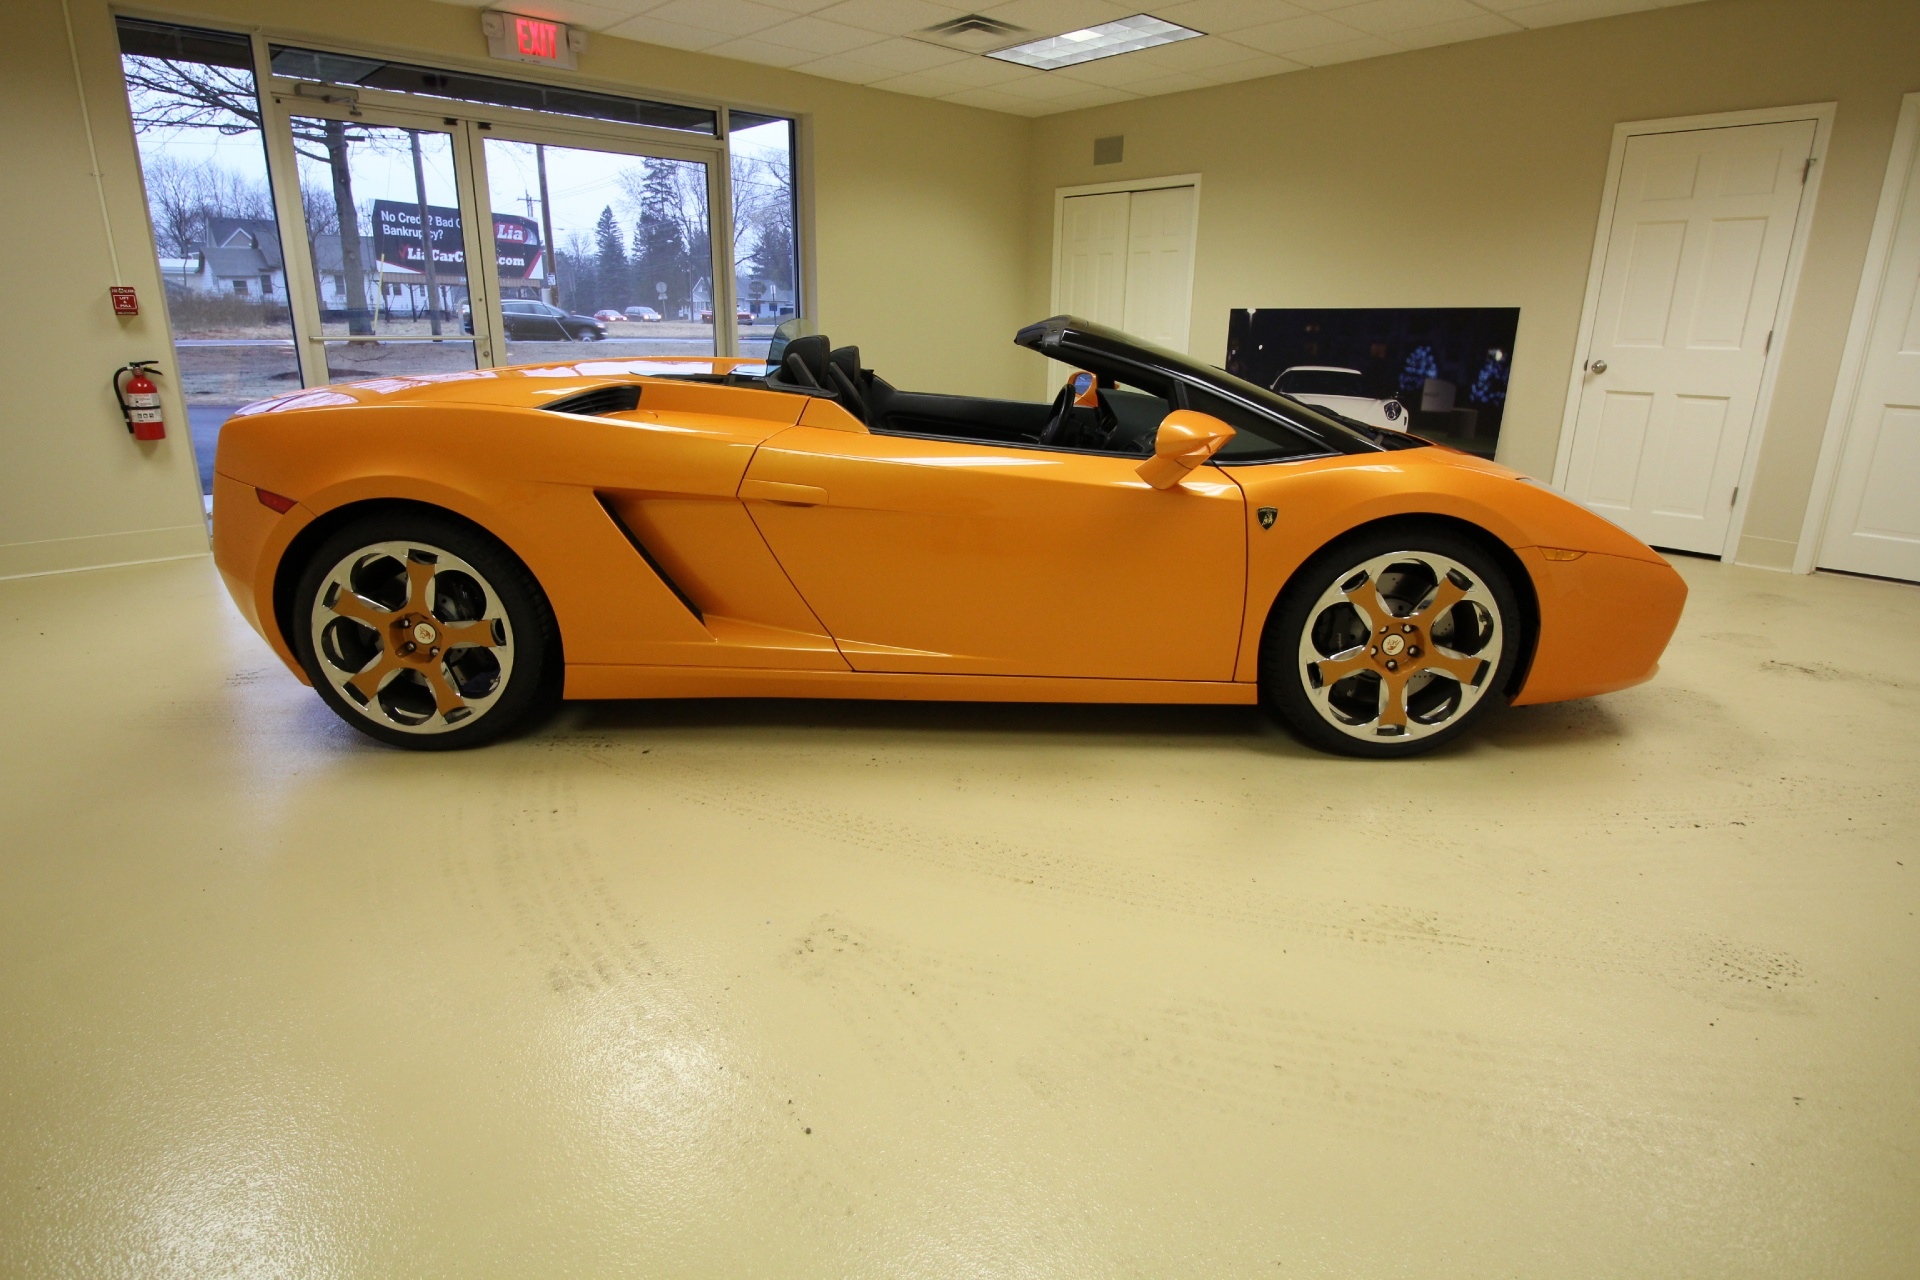 Used 2006 Lamborghini Gallardo Spyder SUPER CLEAN,NO PAINTWORK | Albany, NY